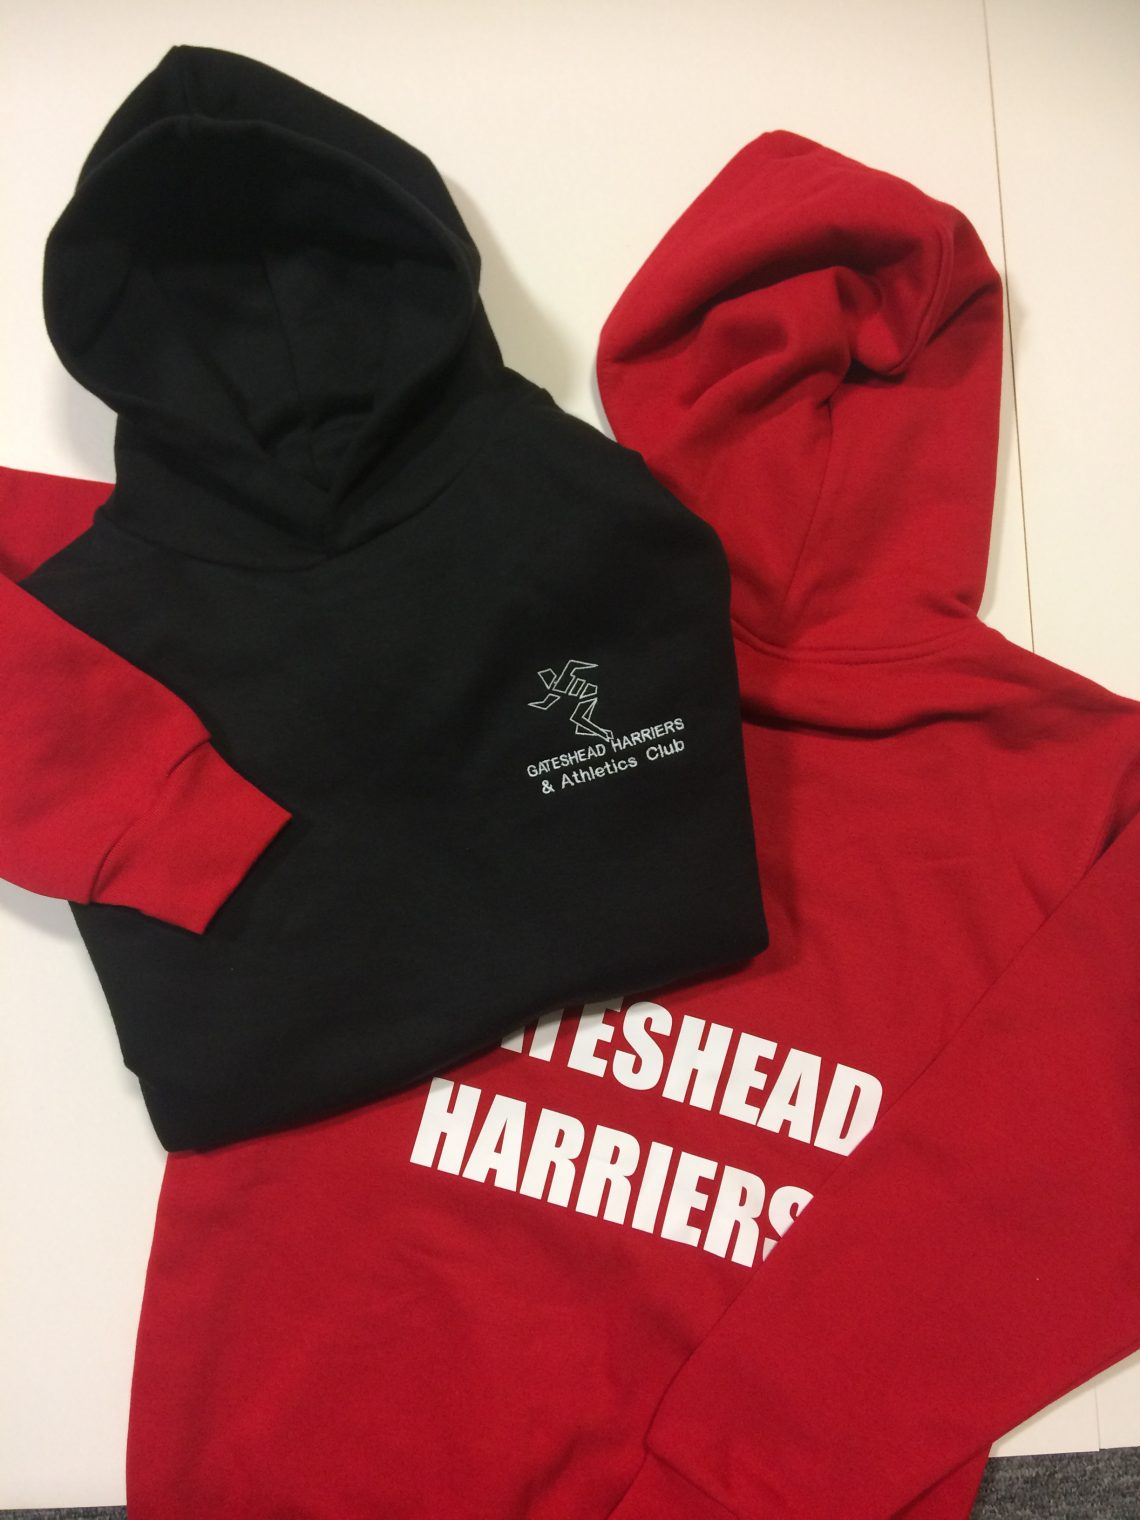 Gateshead Harriers Hoodie Red and Black